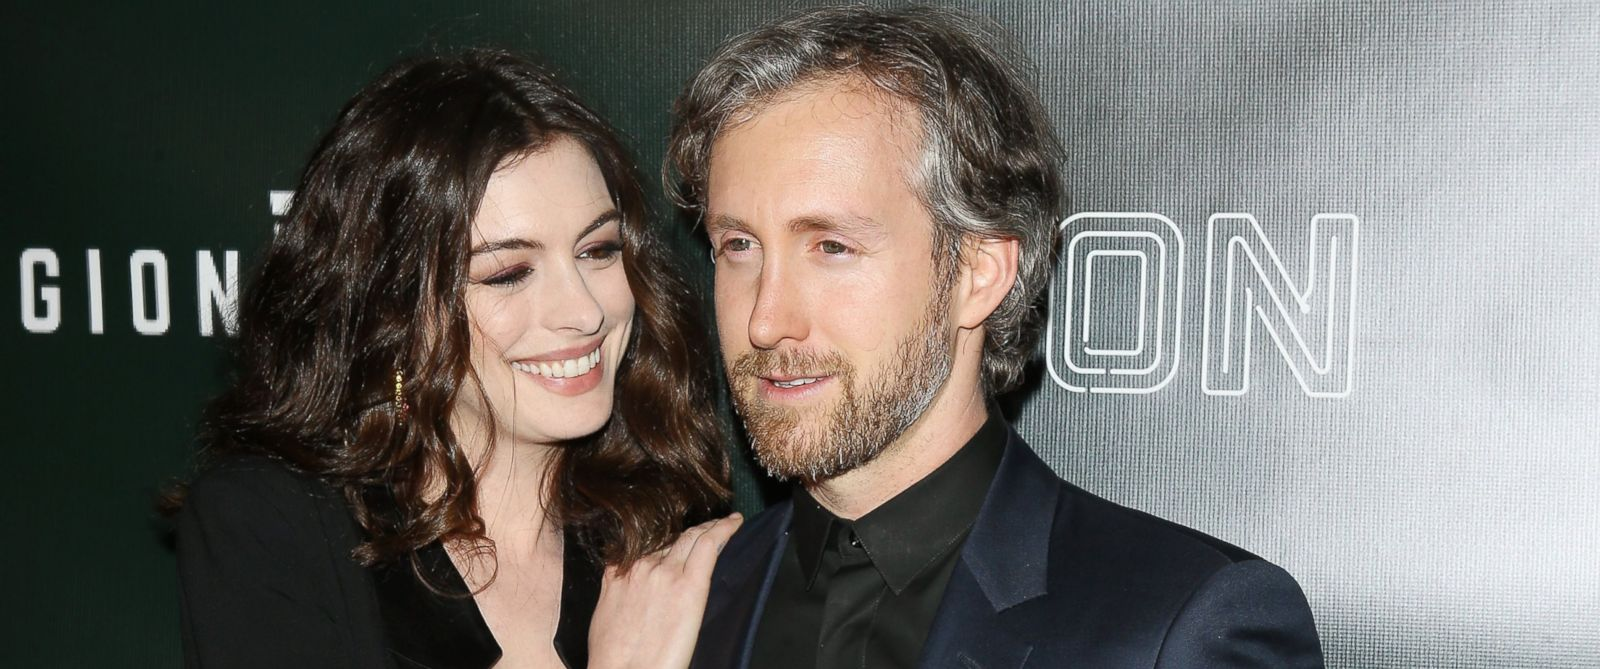 """PHOTO: Anne Hathaway with husand Adam Shulman arrive at the Los Angeles premiere of Neons """"Colossal"""" held at the Vista Theatre on April 4, 2017 in Los Angeles, California."""